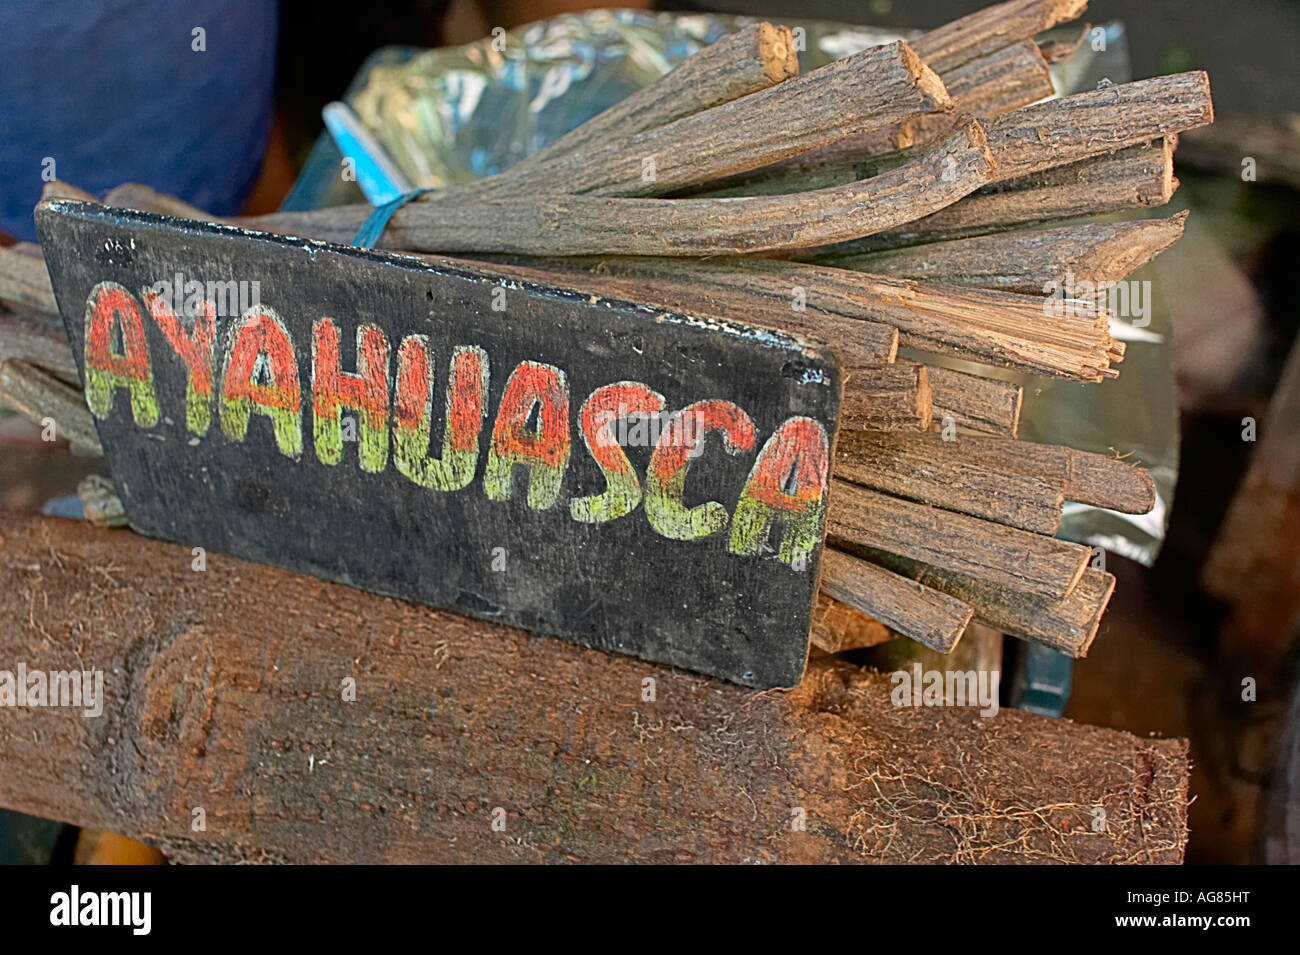 Dried ayahuasca vine for sale in the Belem market Iquitos Peru - Stock Image